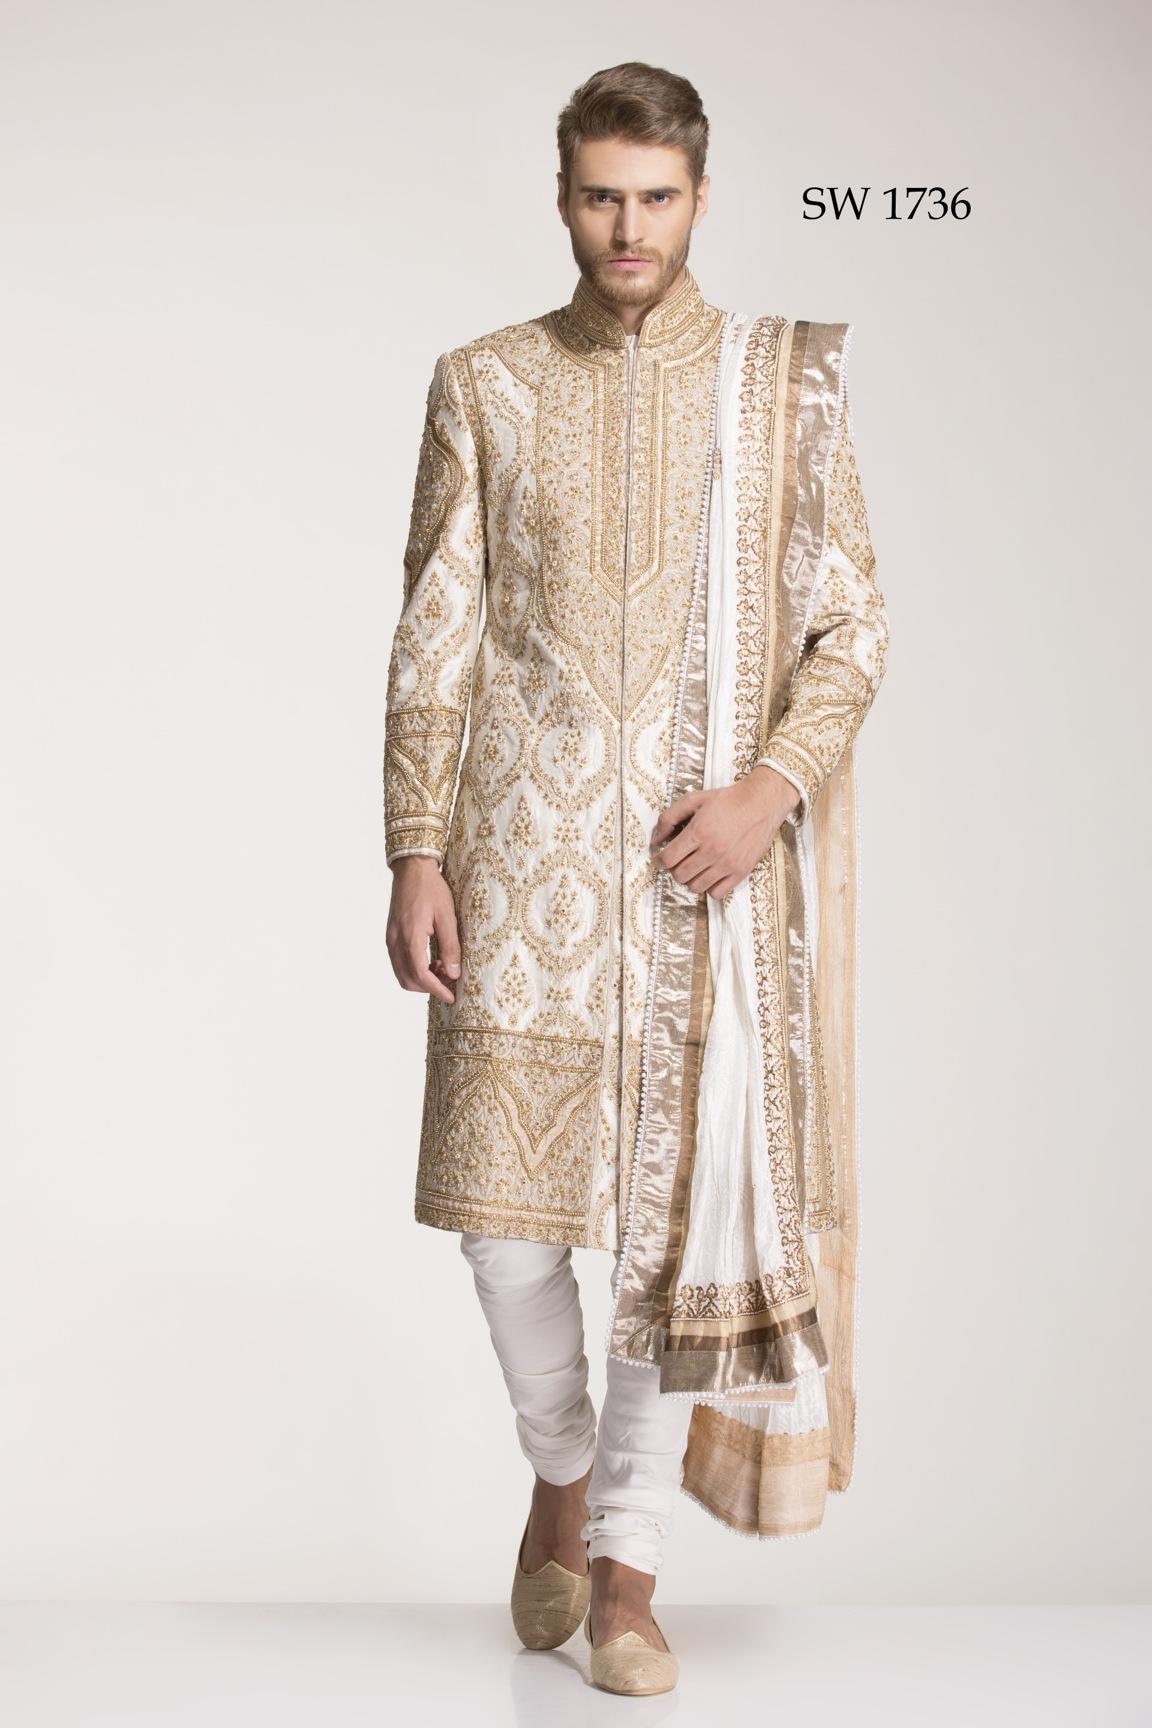 diwan saheb sherwani for men